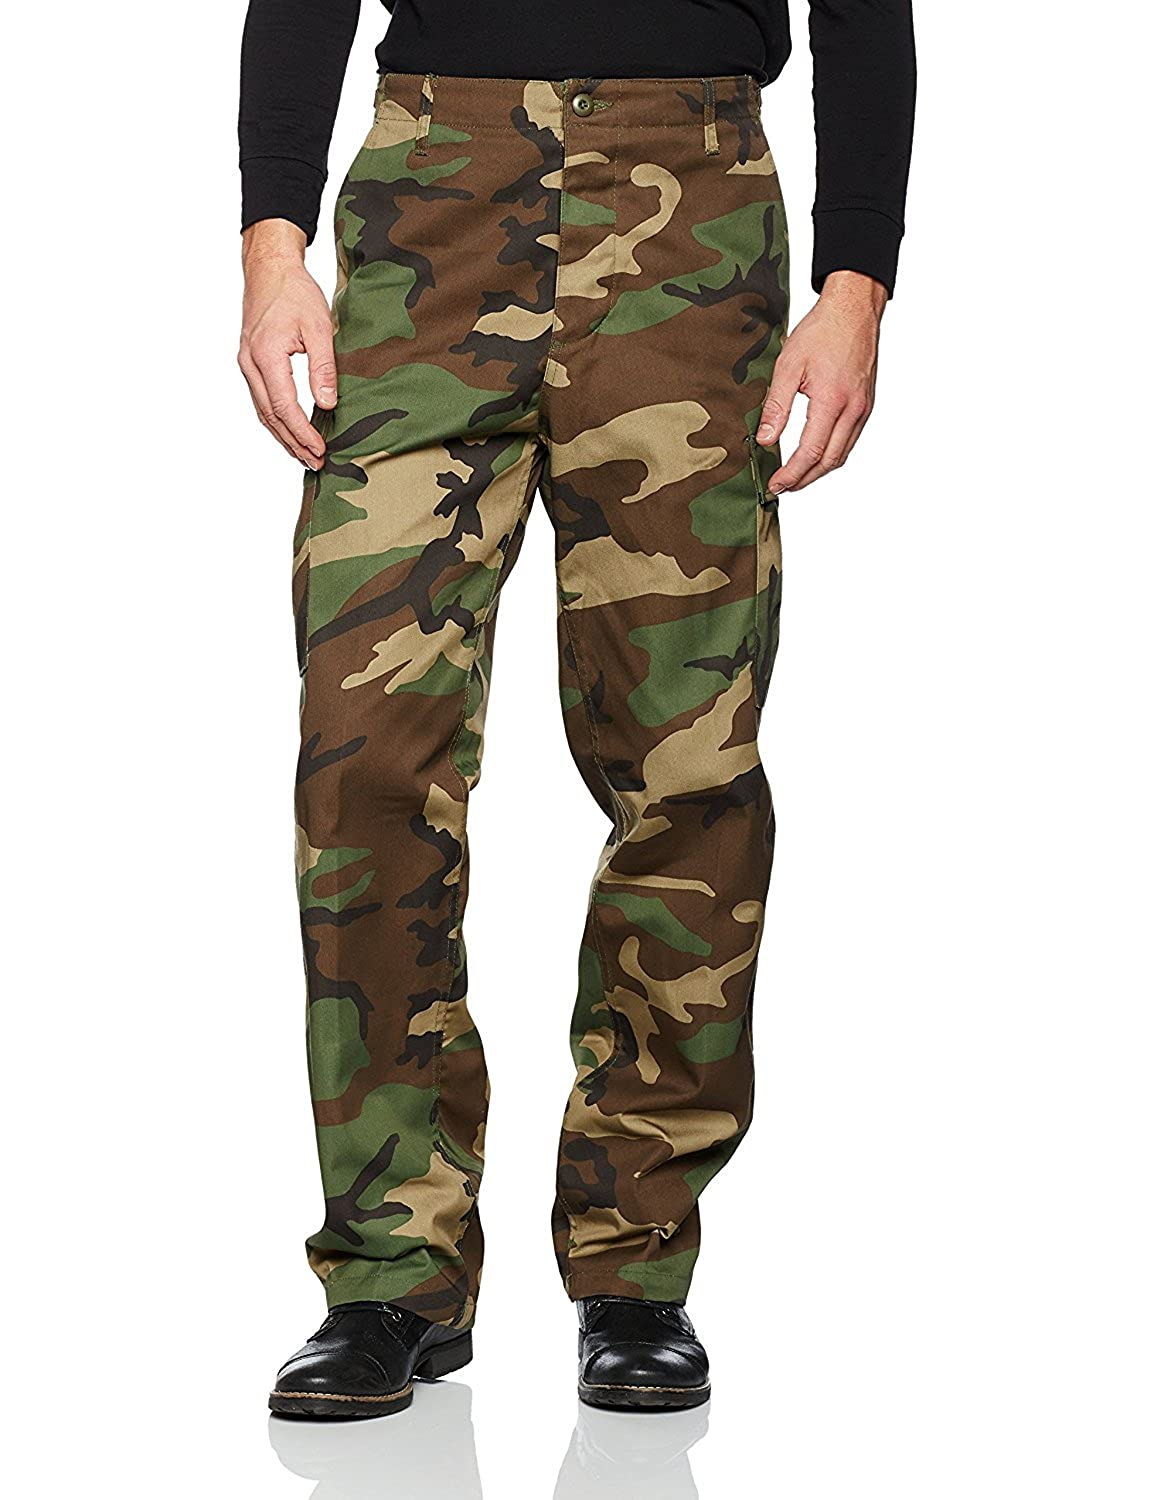 Army Universe Orange Camo Cargo BDU Pants Hunters Camouflage Tactical  Military Fatigues with Pin 8865+PIN 5b1417aa8d5